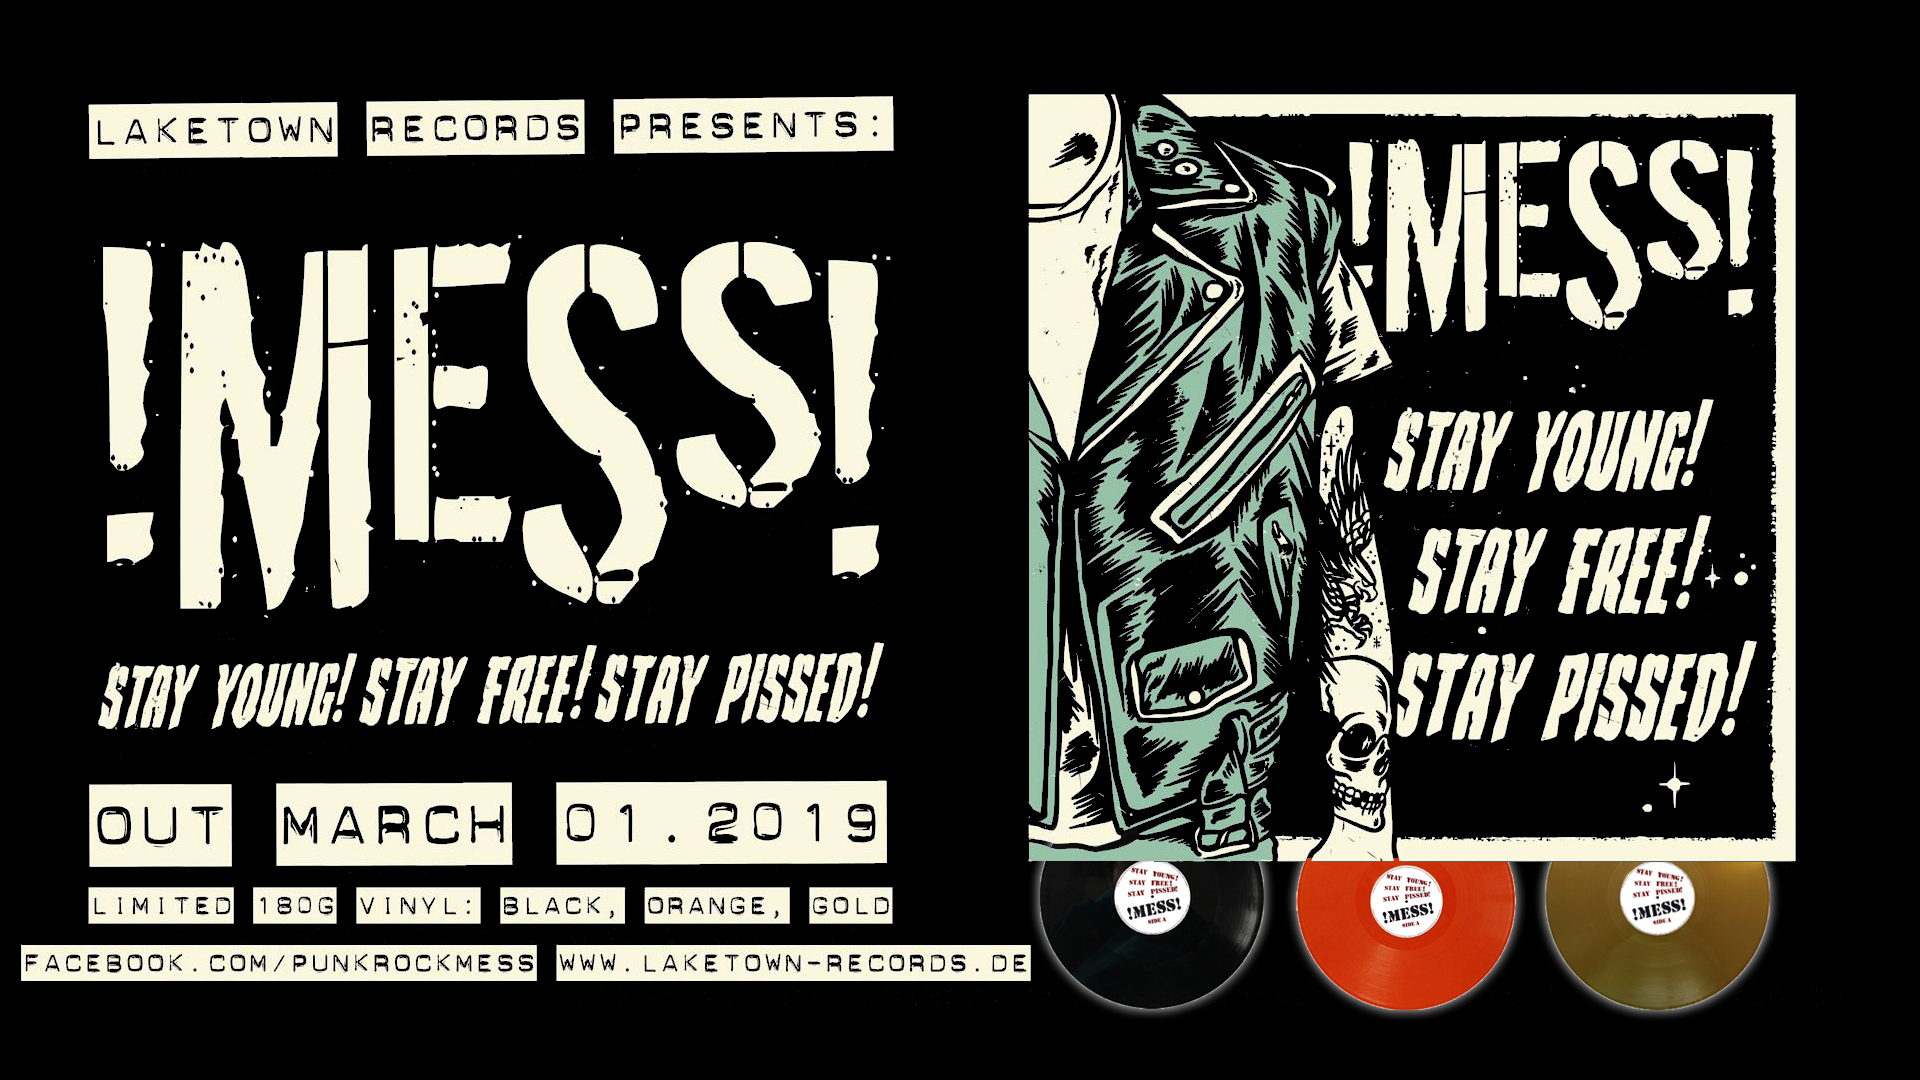 !MESS! - STAY YOUNG! STAY FREE! STAY PISSED!